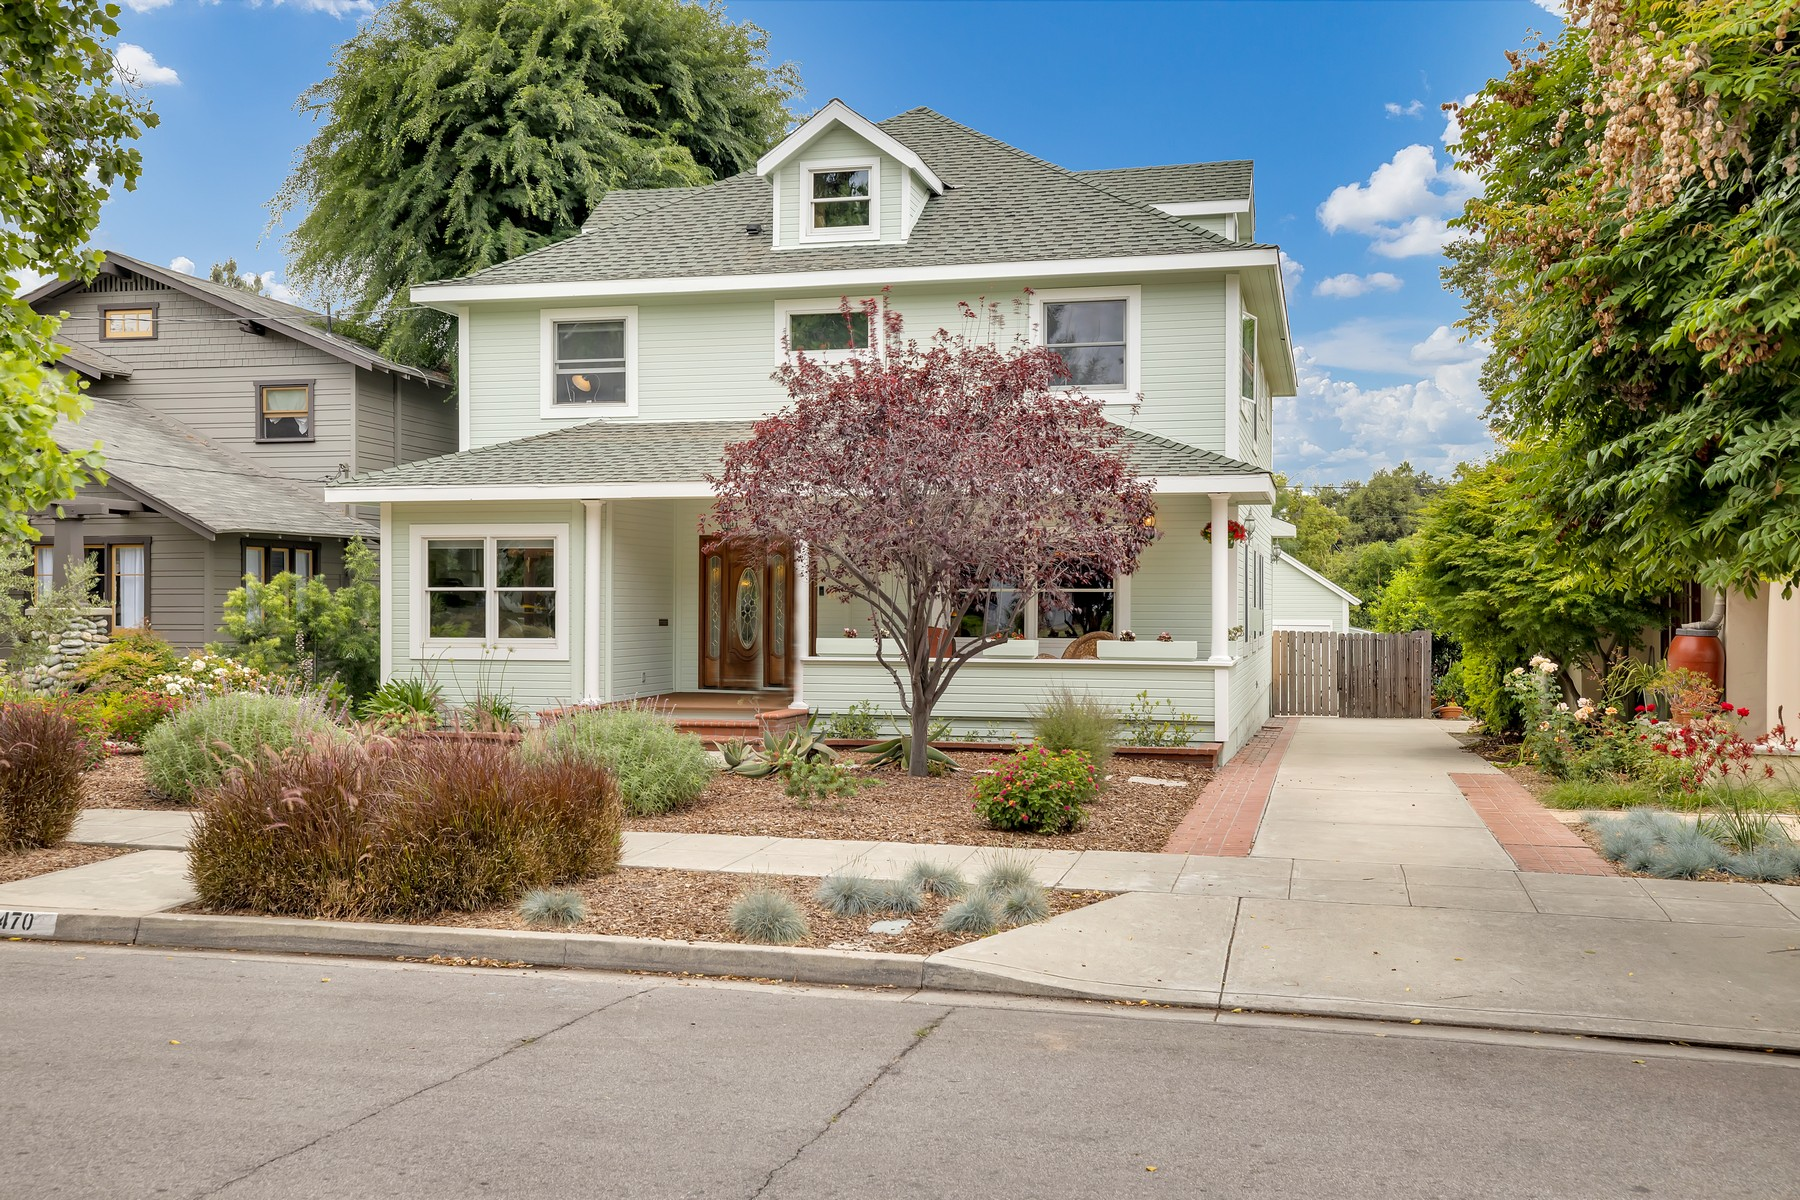 Single Family Home for sale in 470 W. 8th Street, Claremont, California ,91711